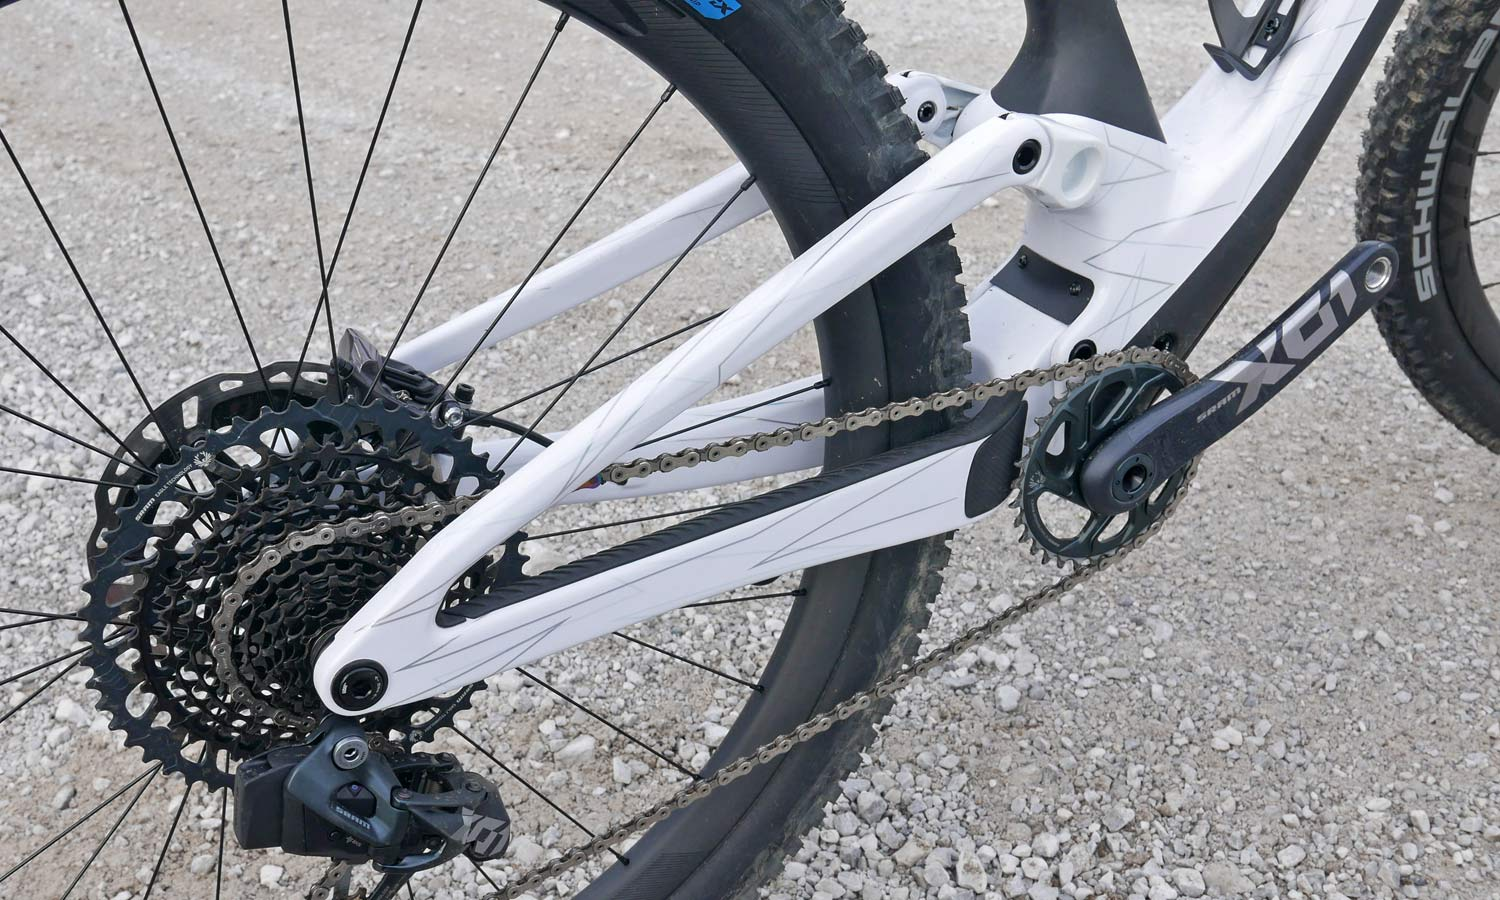 2022 Scott Spark RC & 900 XC trail mountain bikes, light fully-integrated cross-country MTB,driveside